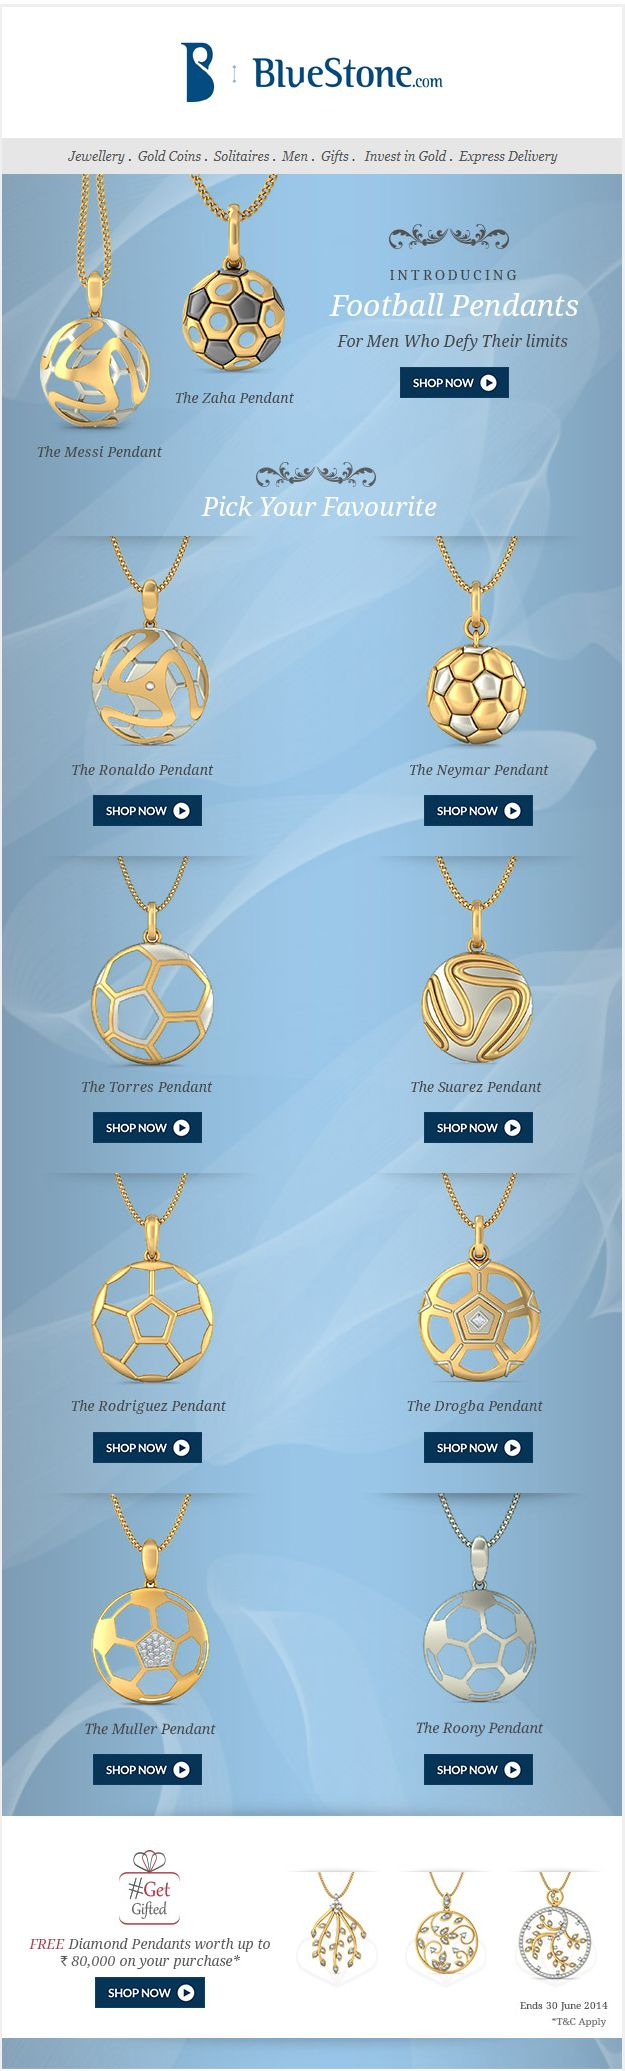 3D football pendant designs in India http://www.bluestone.com/jewellery/football-pendants.html